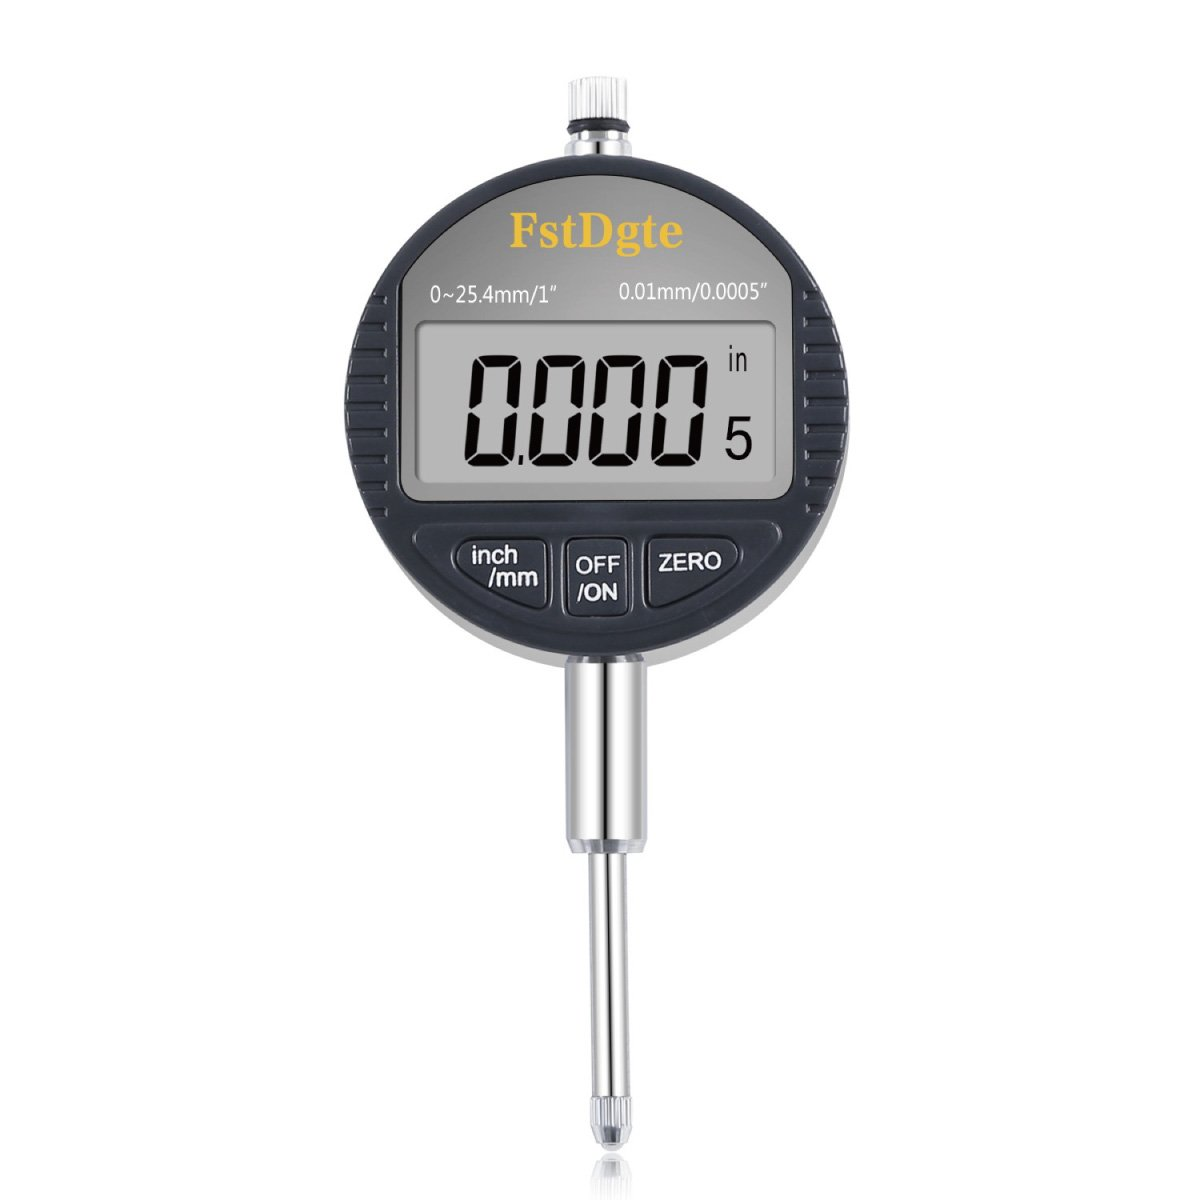 Digital Dial Test Indicator Gage Gauge,Range 0-1 Inch/25.4 mm,Resolution 0.0005 Inch/0.01mm,Inch/Metric Conversion,Electronic Measuring Tool with Back Lug Auto Off Featured, by FstDgt